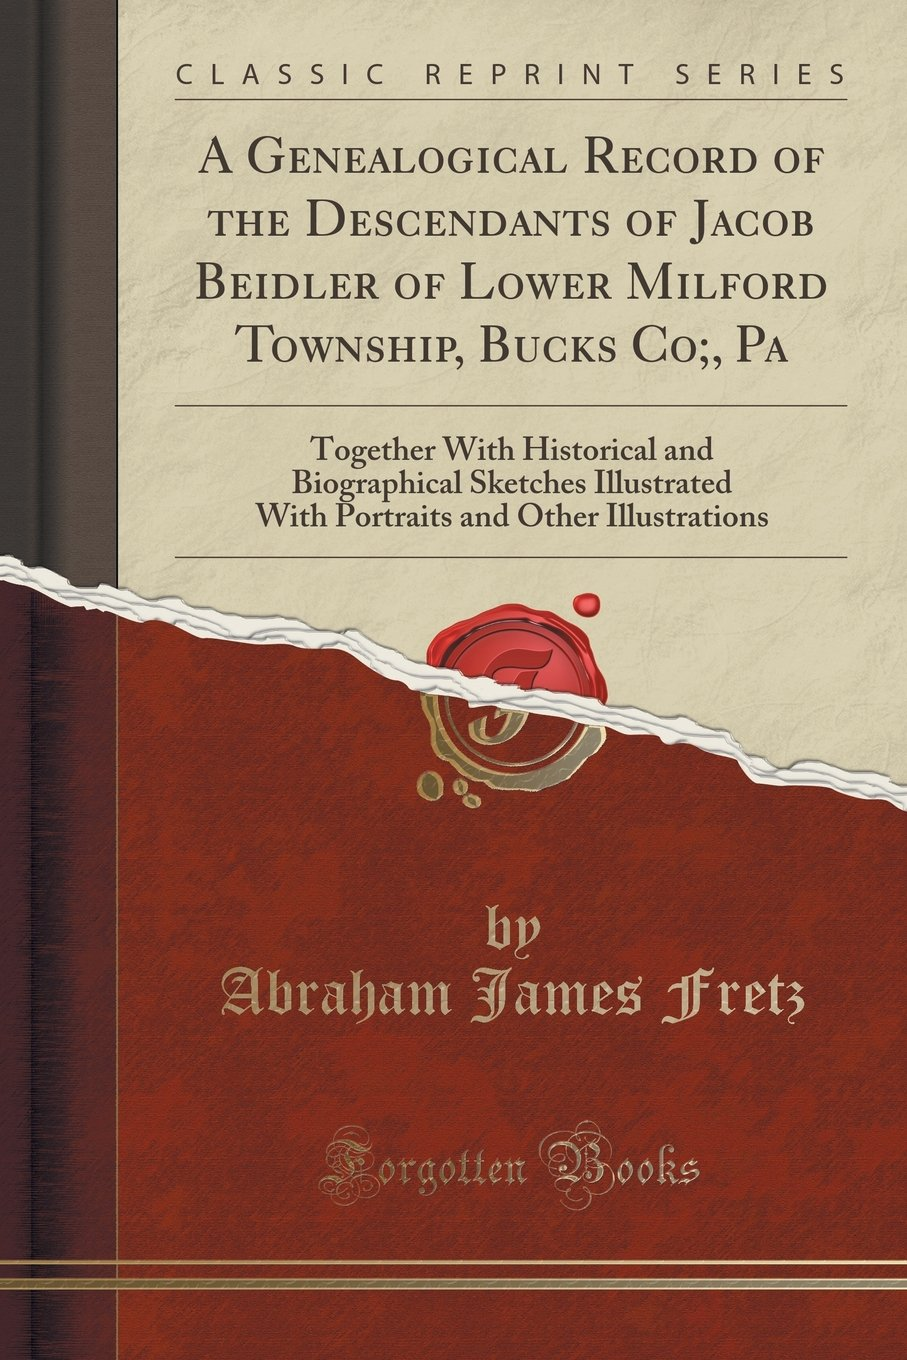 A Genealogical Record of the Descendants of Jacob Beidler of Lower Milford Township, Bucks Co, Pa: Together With Historical and Biographical Sketches and Other Illustrations (Classic Reprint)